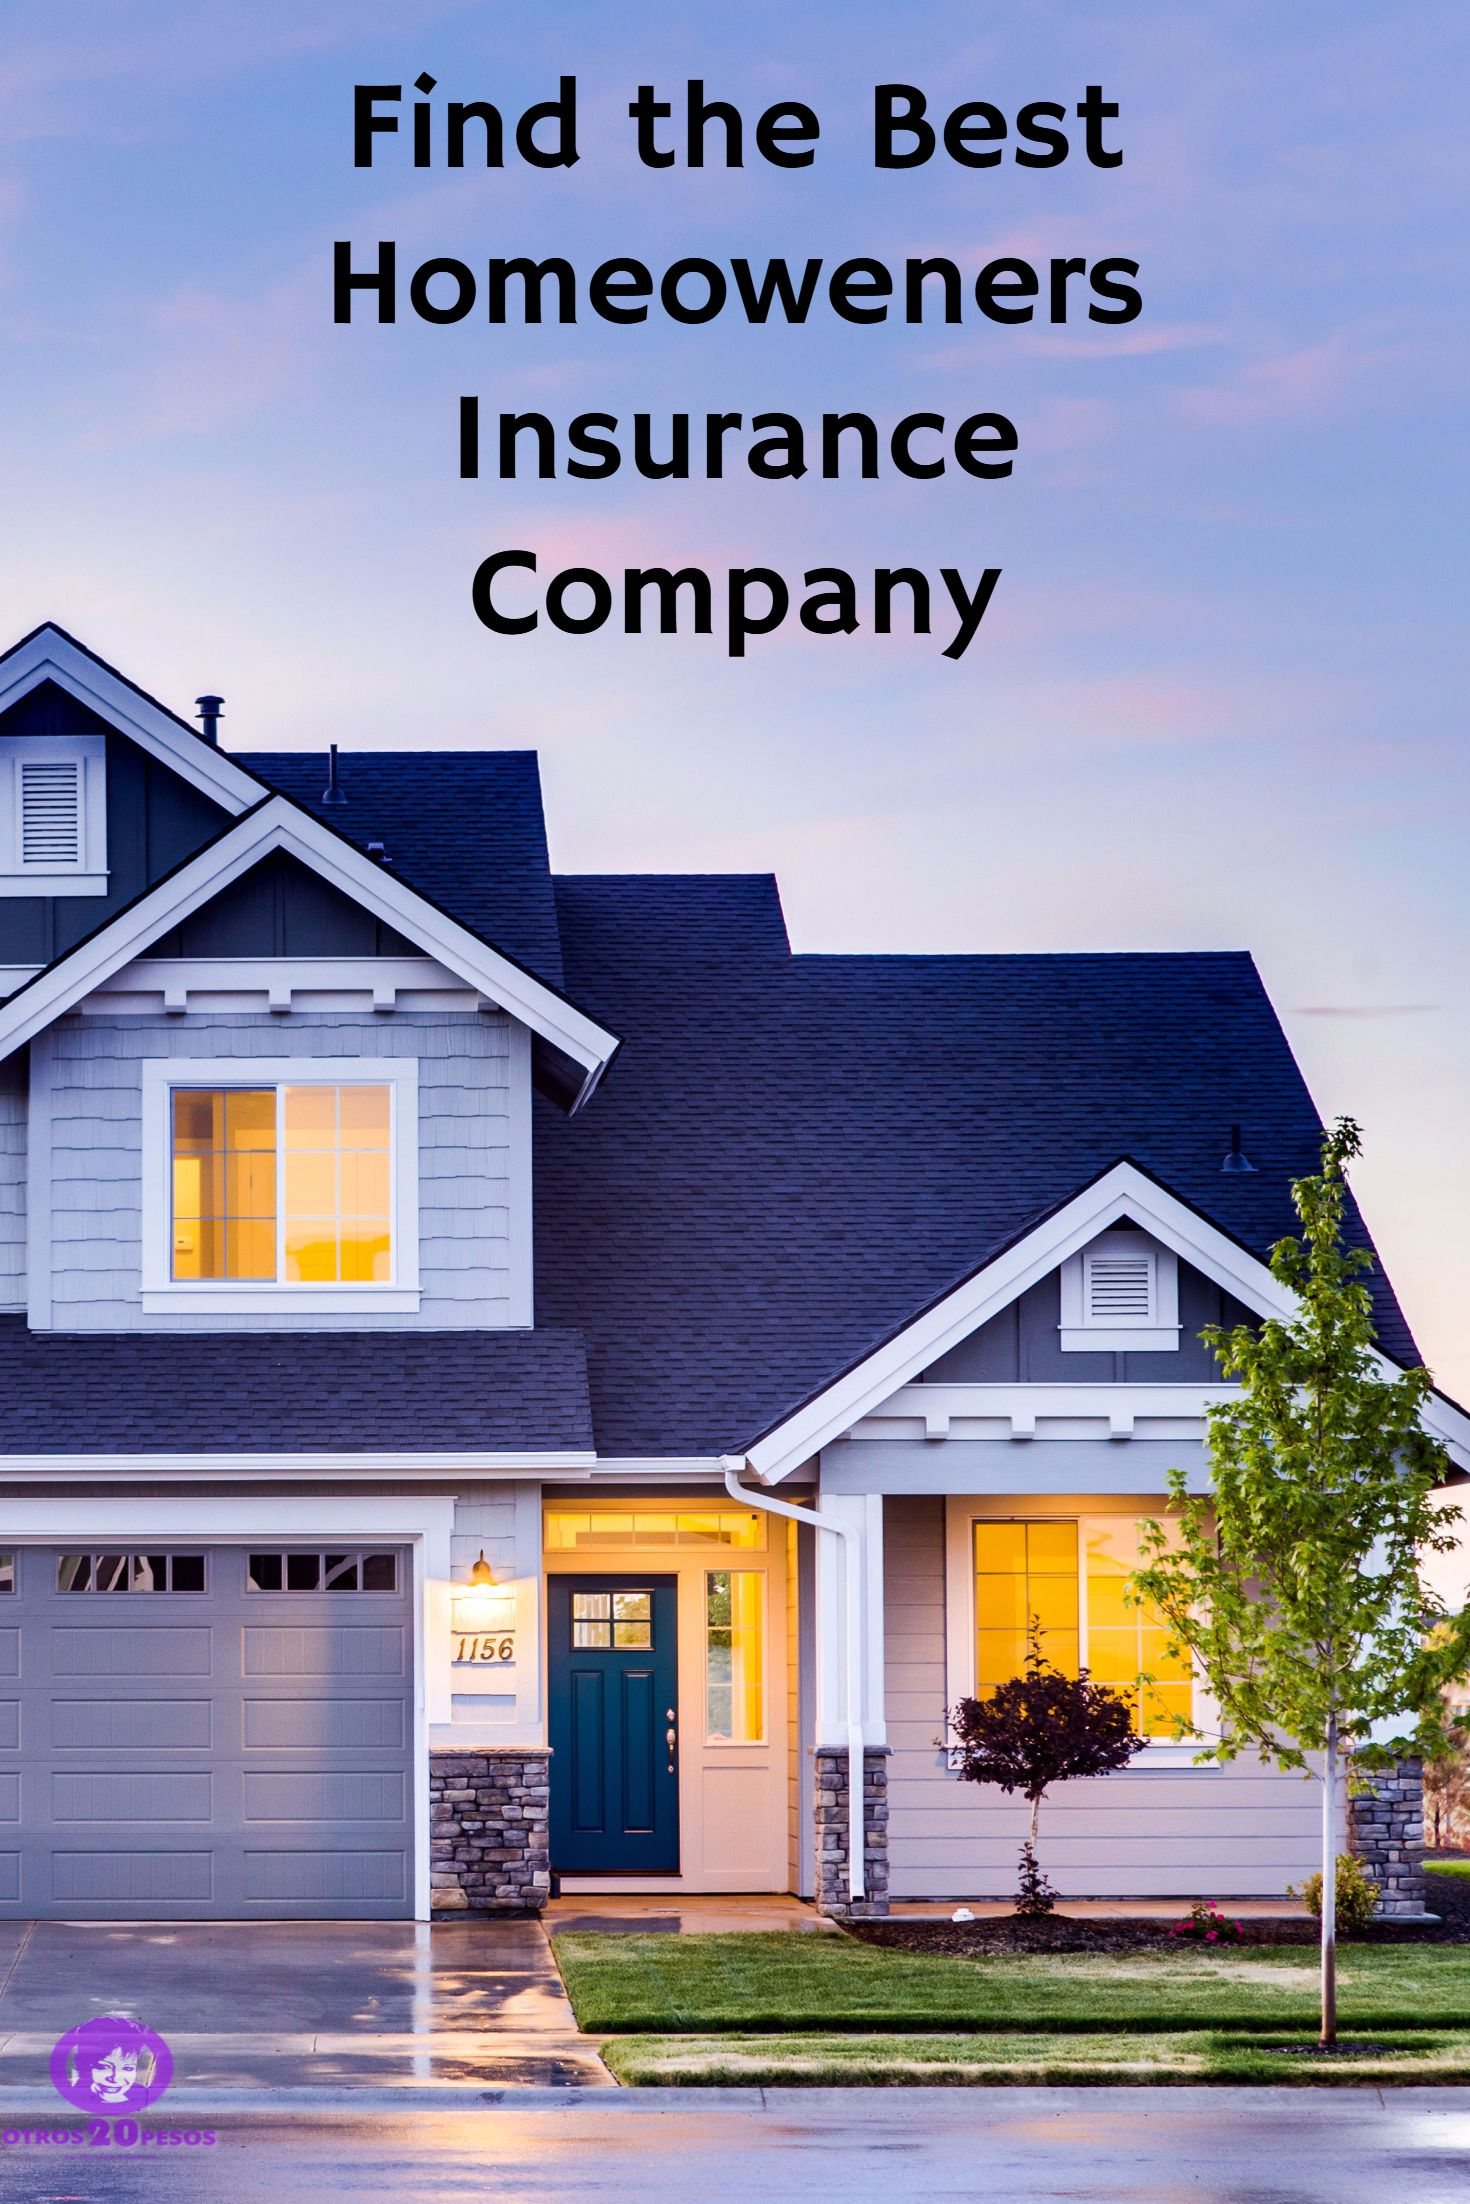 Best Homeowners Insurance Companies in Consumer Reports